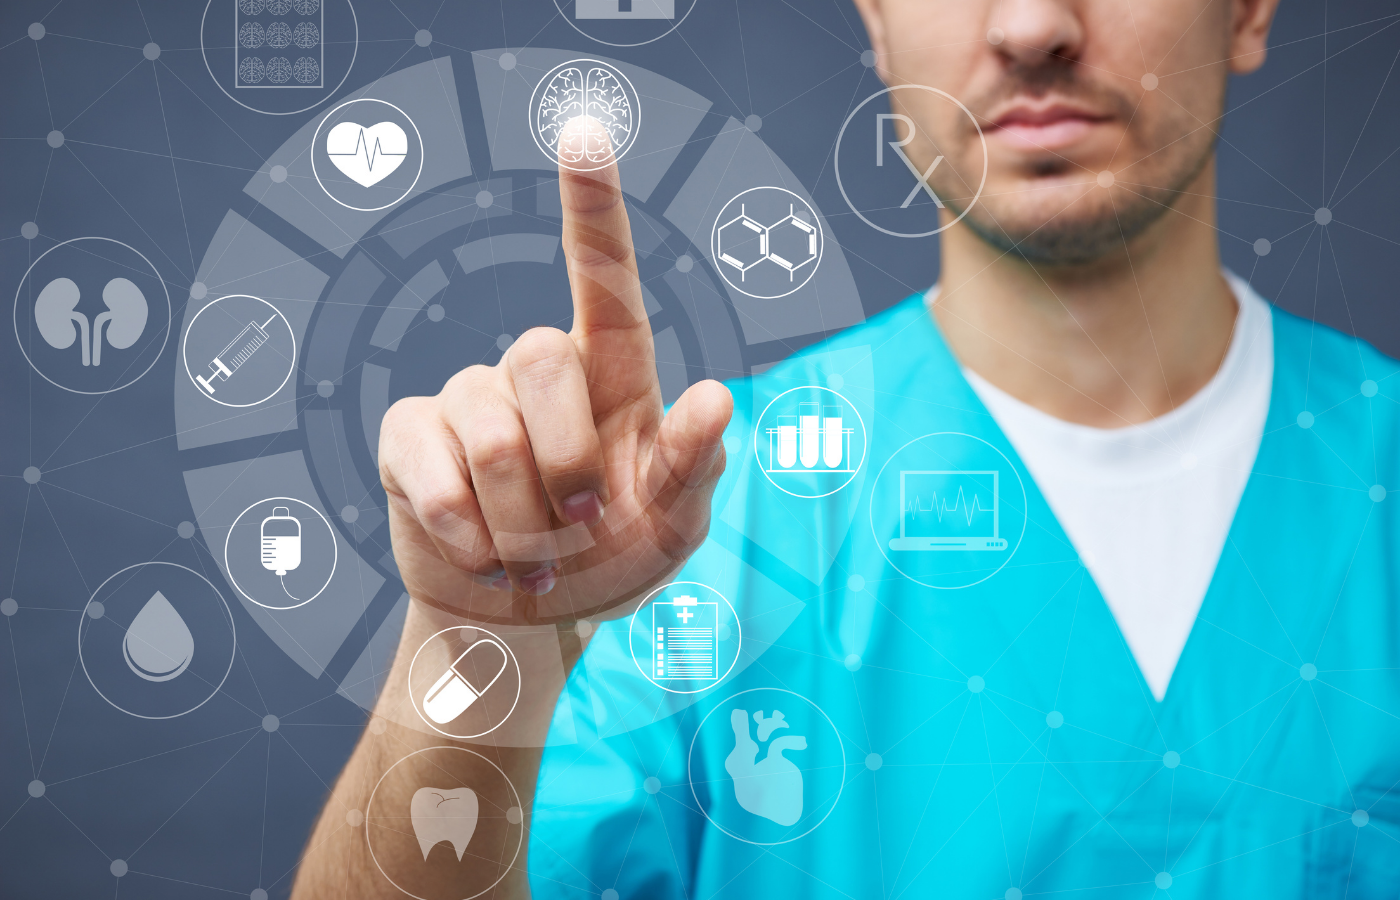 Software as a medical device